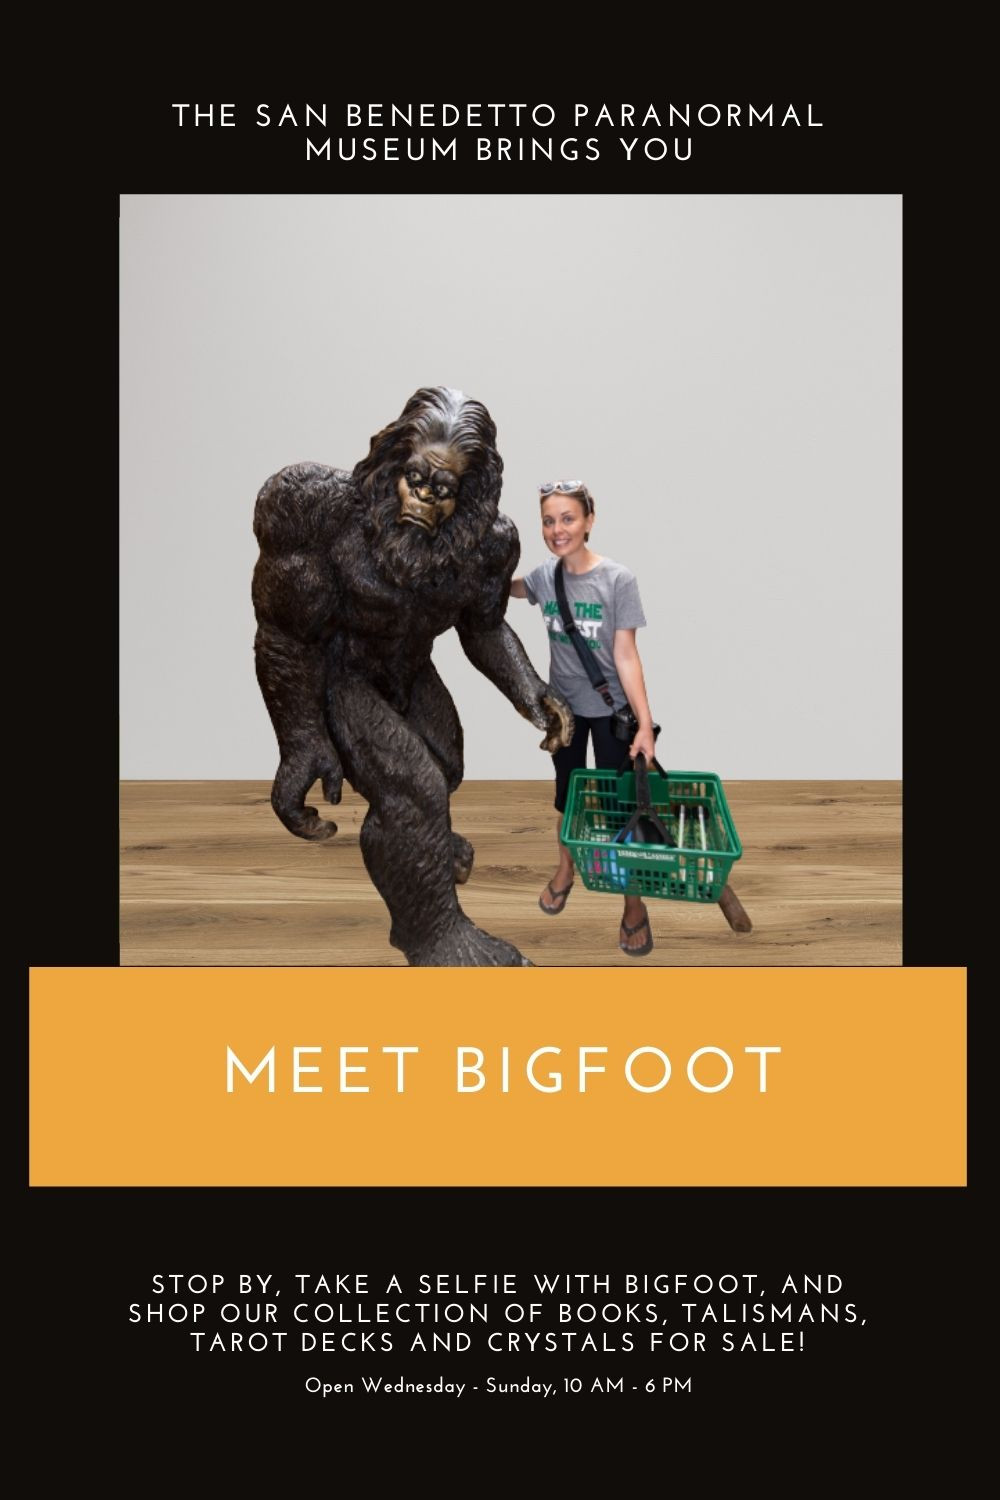 Take a selfie with Bigfoot at the San Benedetto Parannoral Museum. Open Wednesday - Sunday, ten A.M. to six P.M.